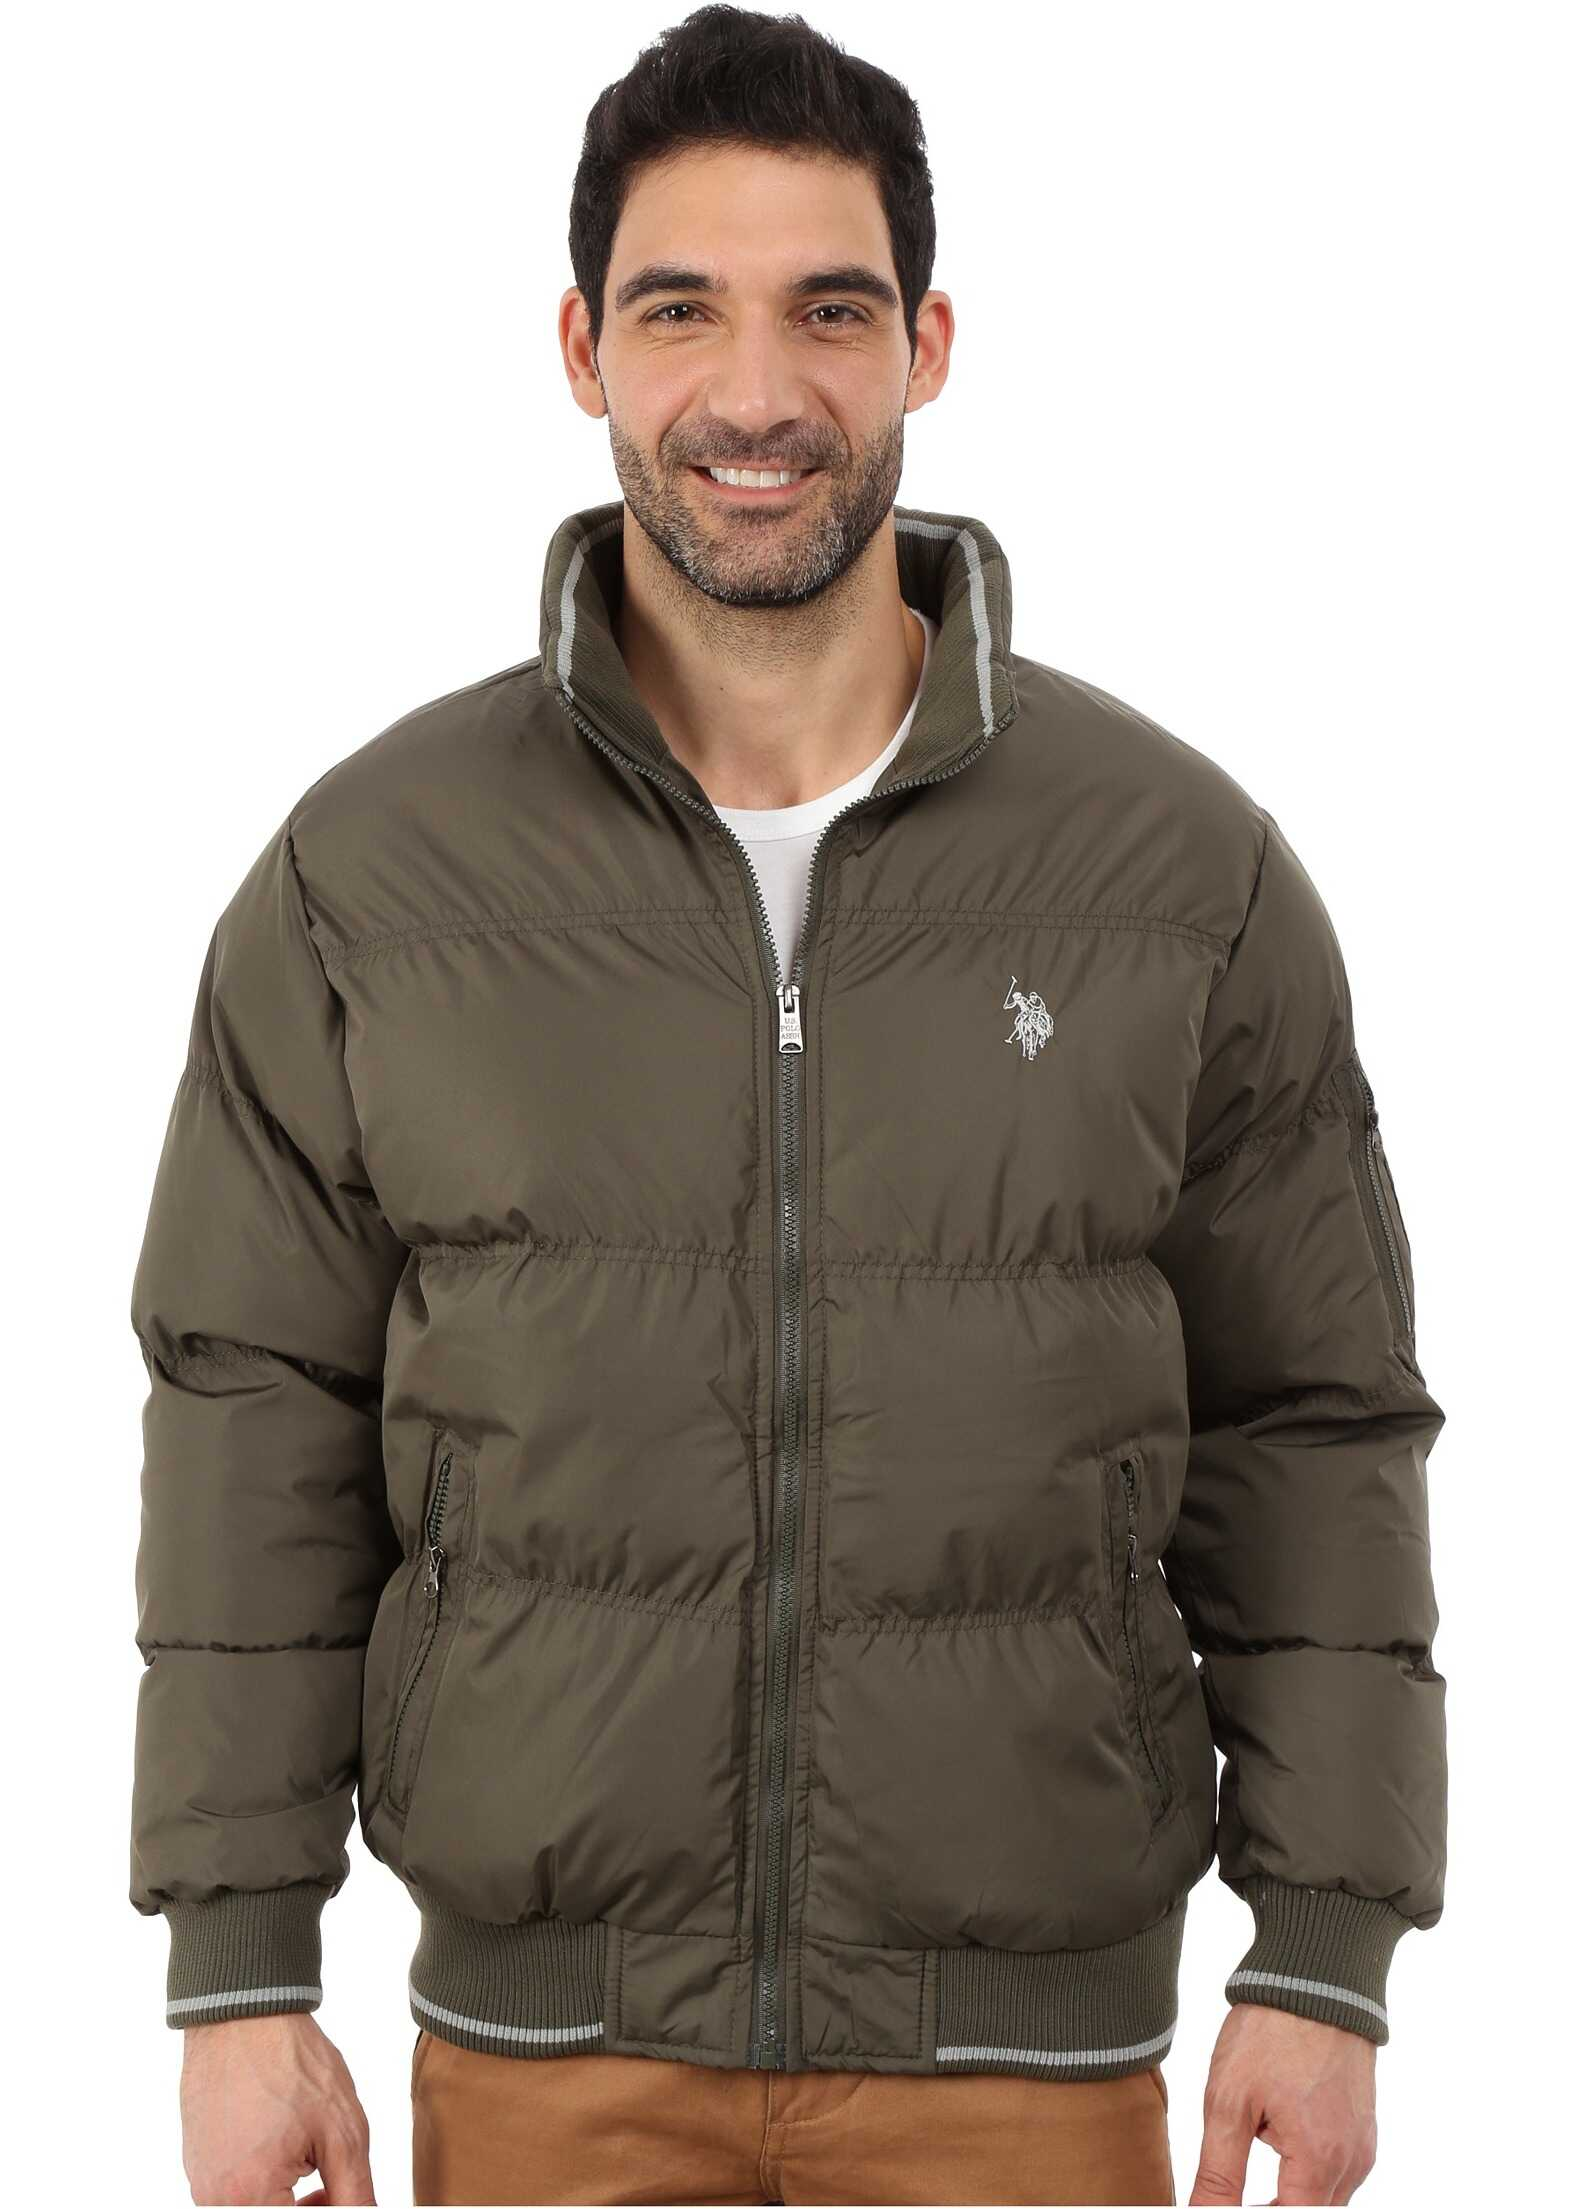 U.S. POLO ASSN. Puffer Jacket with Striped Rib Knit Collar Forest Night